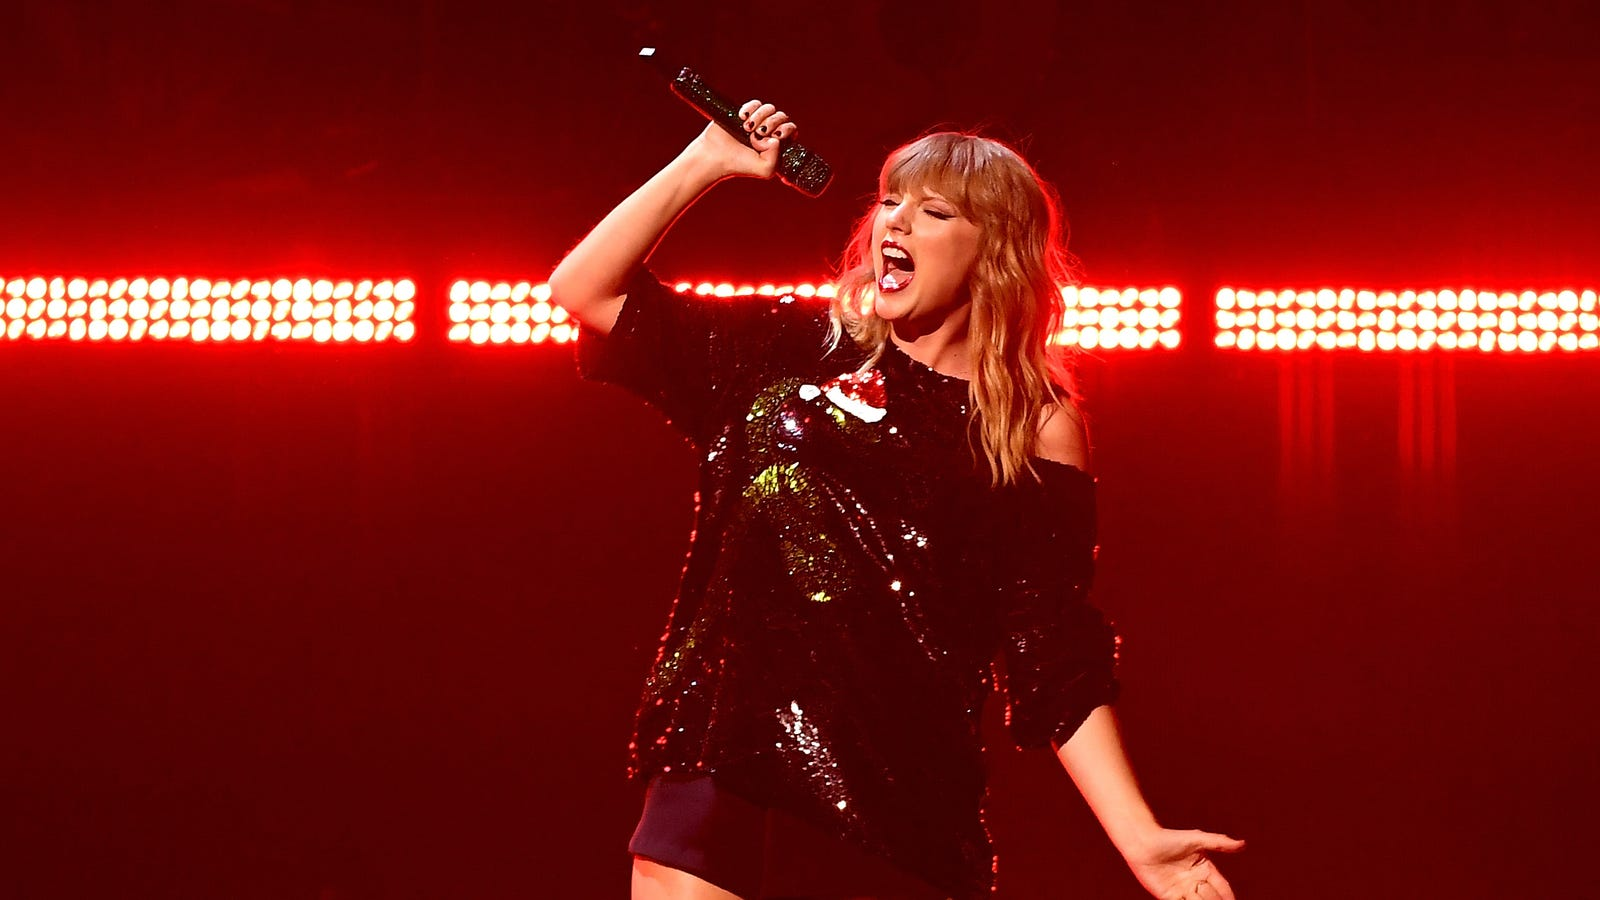 Welcome to The Swift Life, the social networking app that's all Taylor talk, all the time